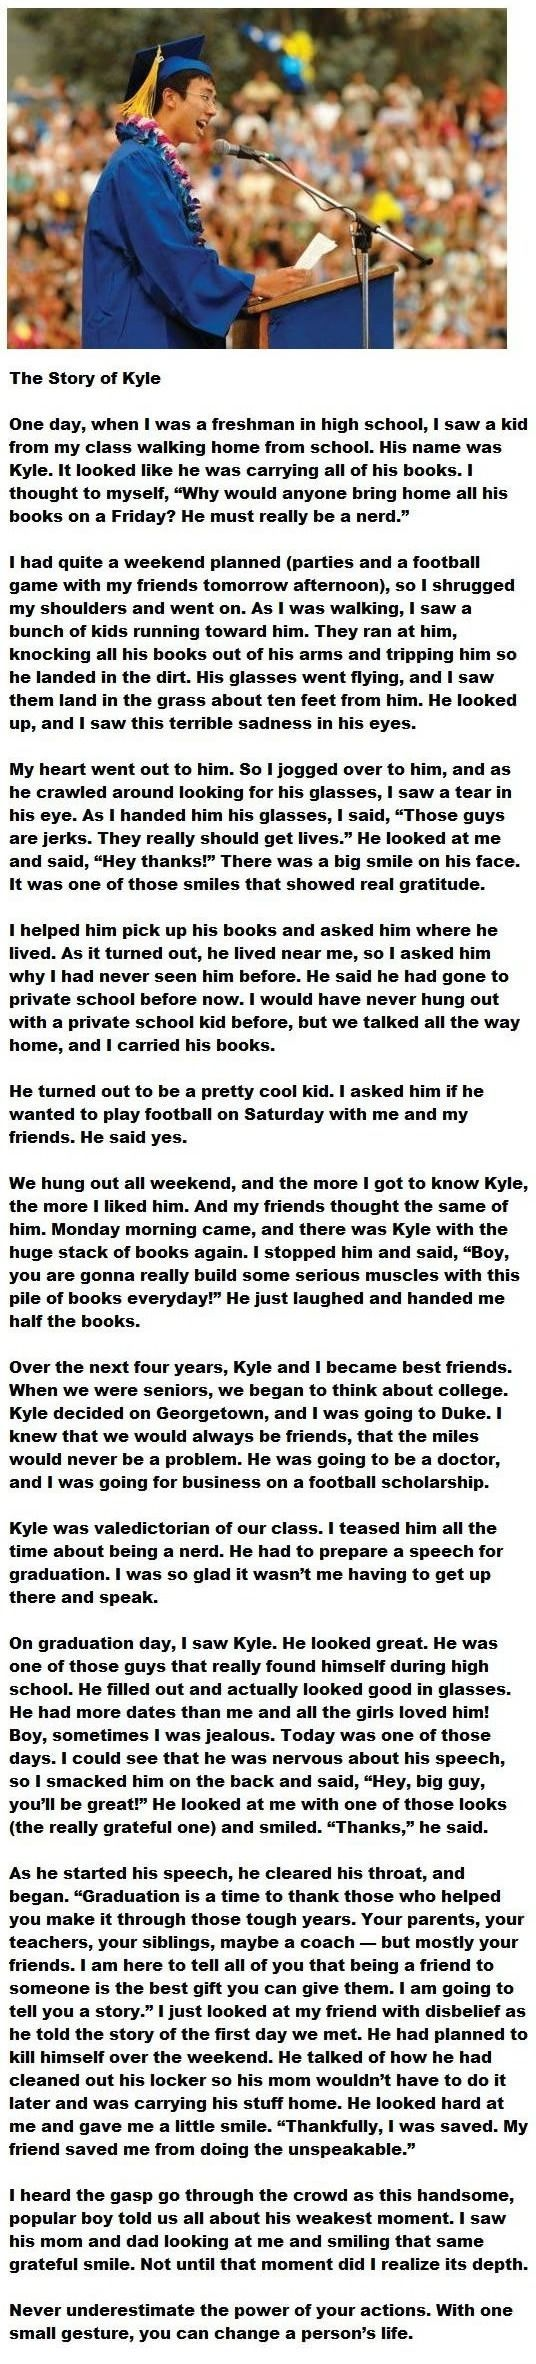 Wow... this is truly amazing. You never know what someone is going through.